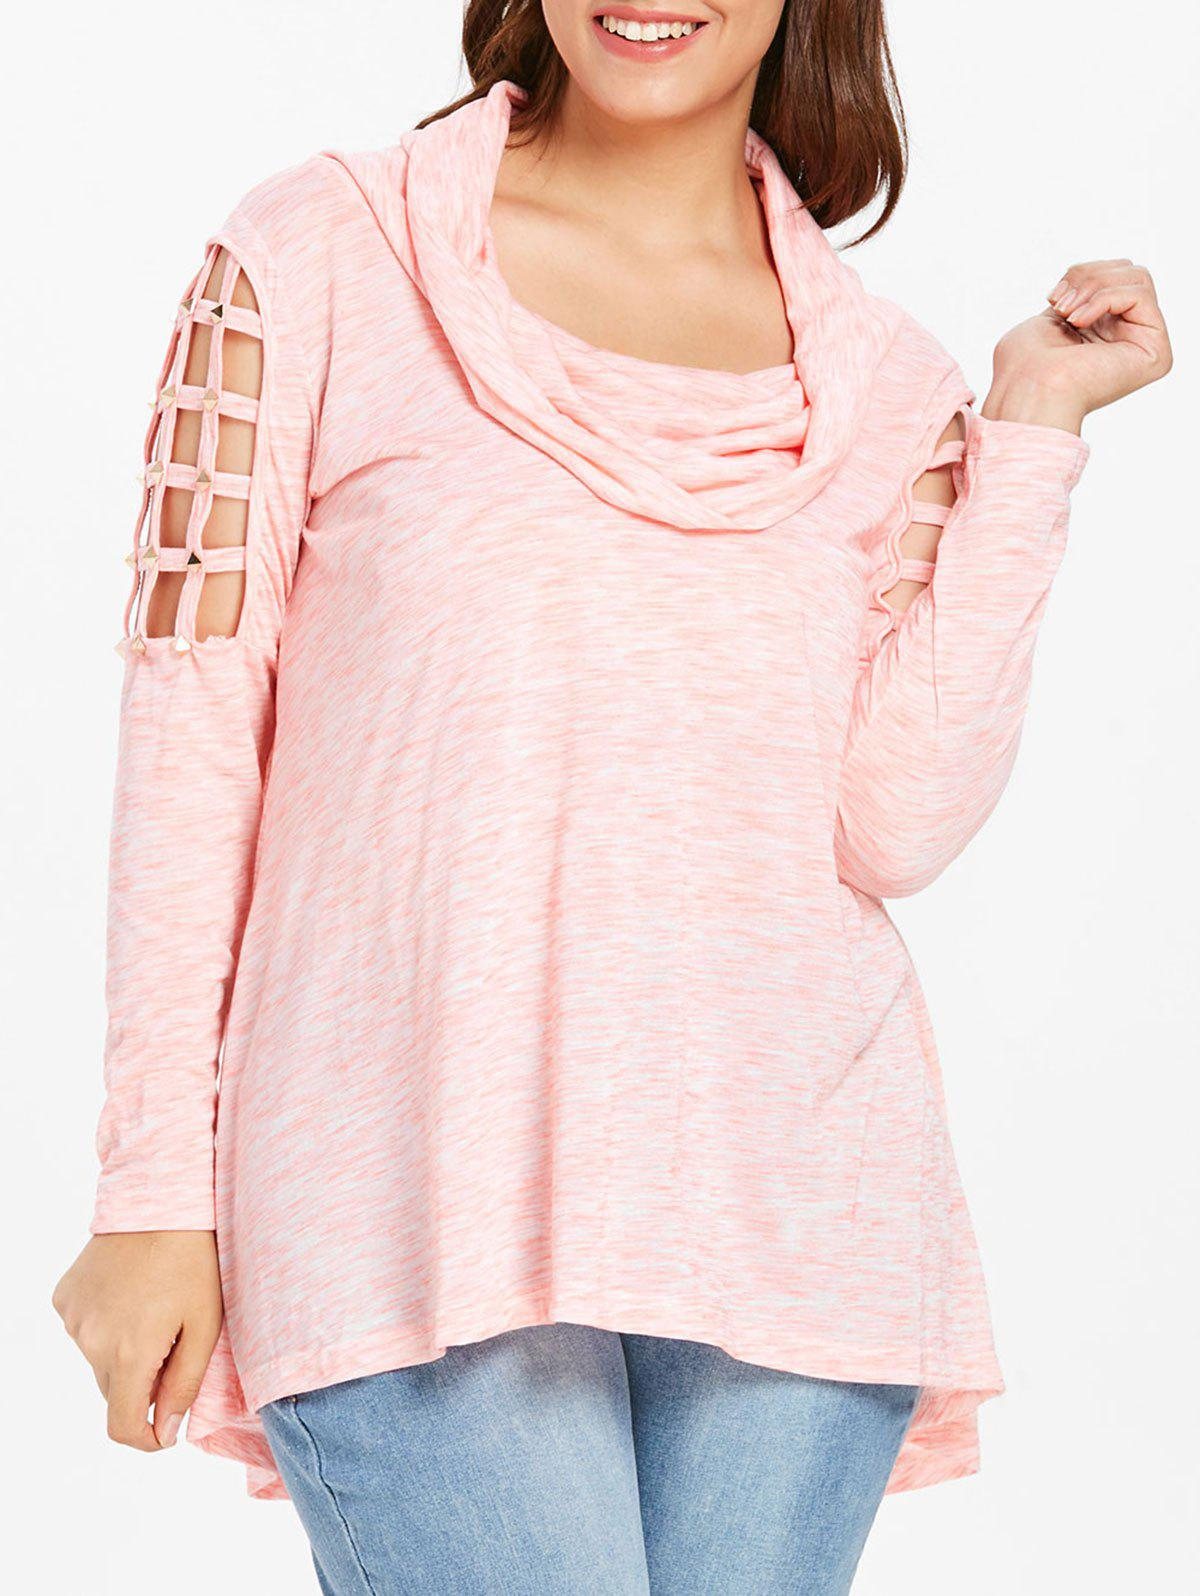 e6f4eabe8f758 48% OFF   2018 Plus Size Rivets Detail Cowl Neck T-shirt In Sakura ...